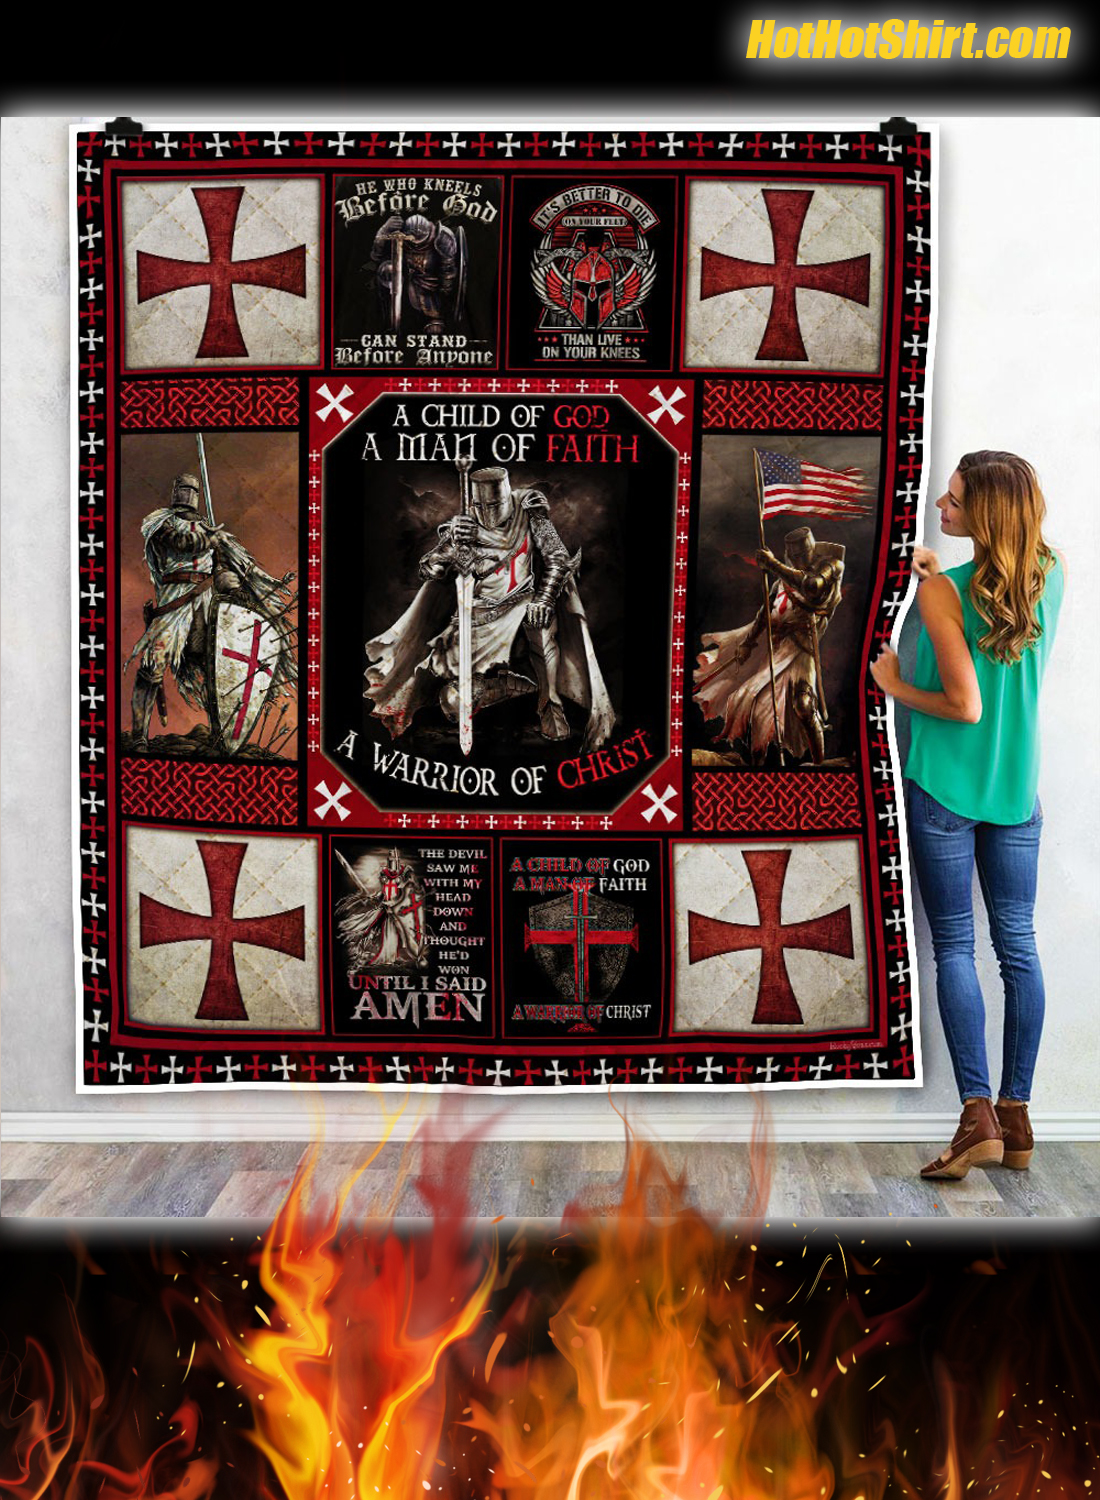 The Knights Templar Christian Warrior Quilt Blanket 1